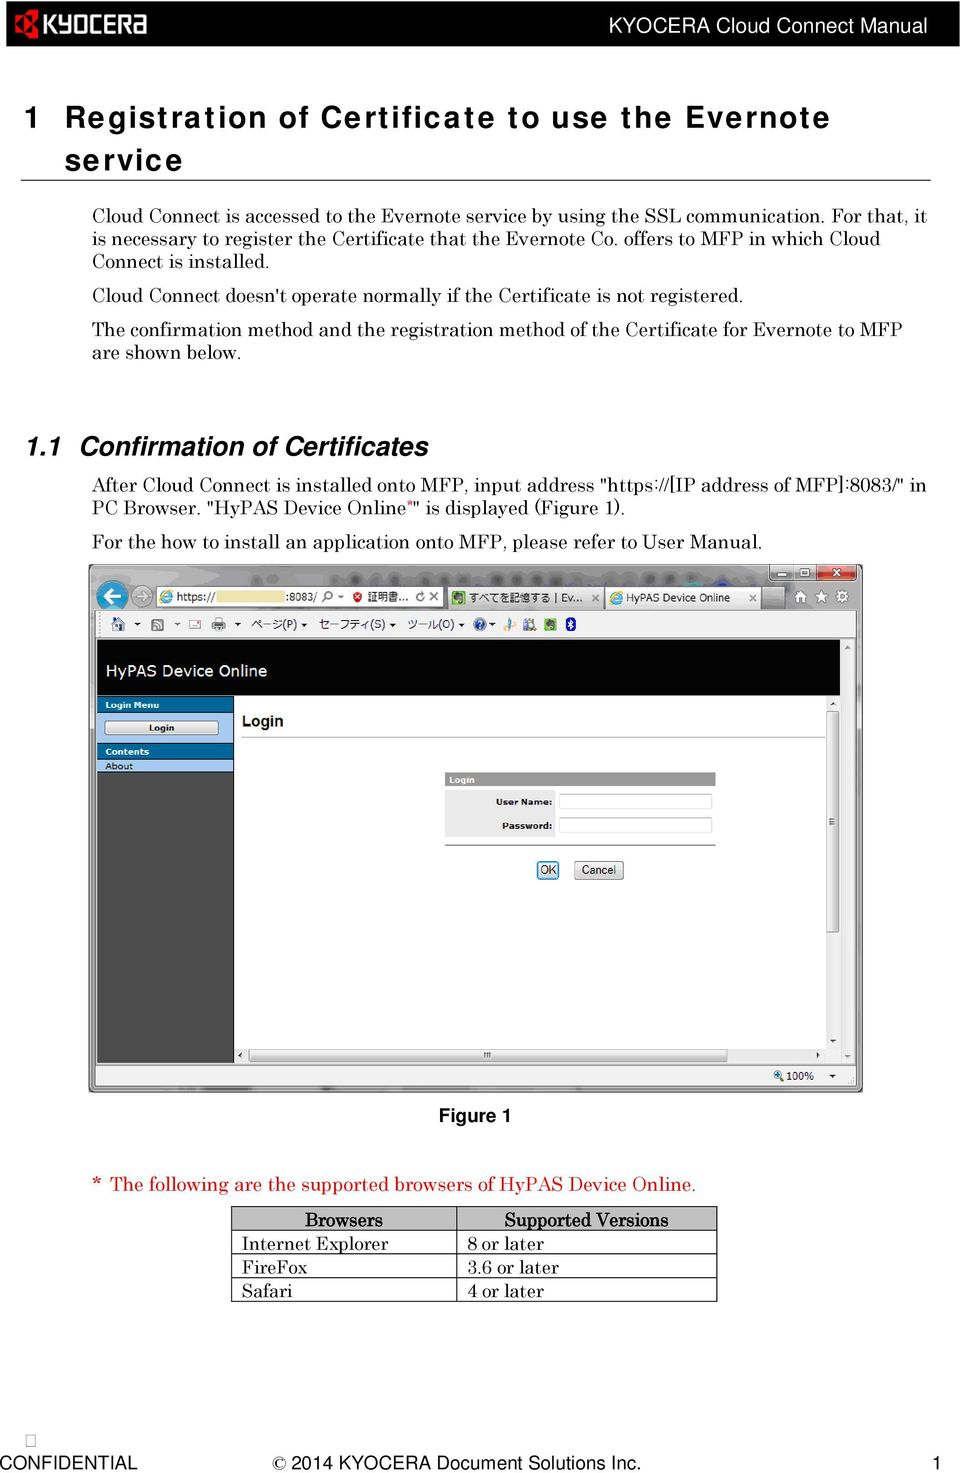 KYOCERA Cloud Connect Manual (How to import the server